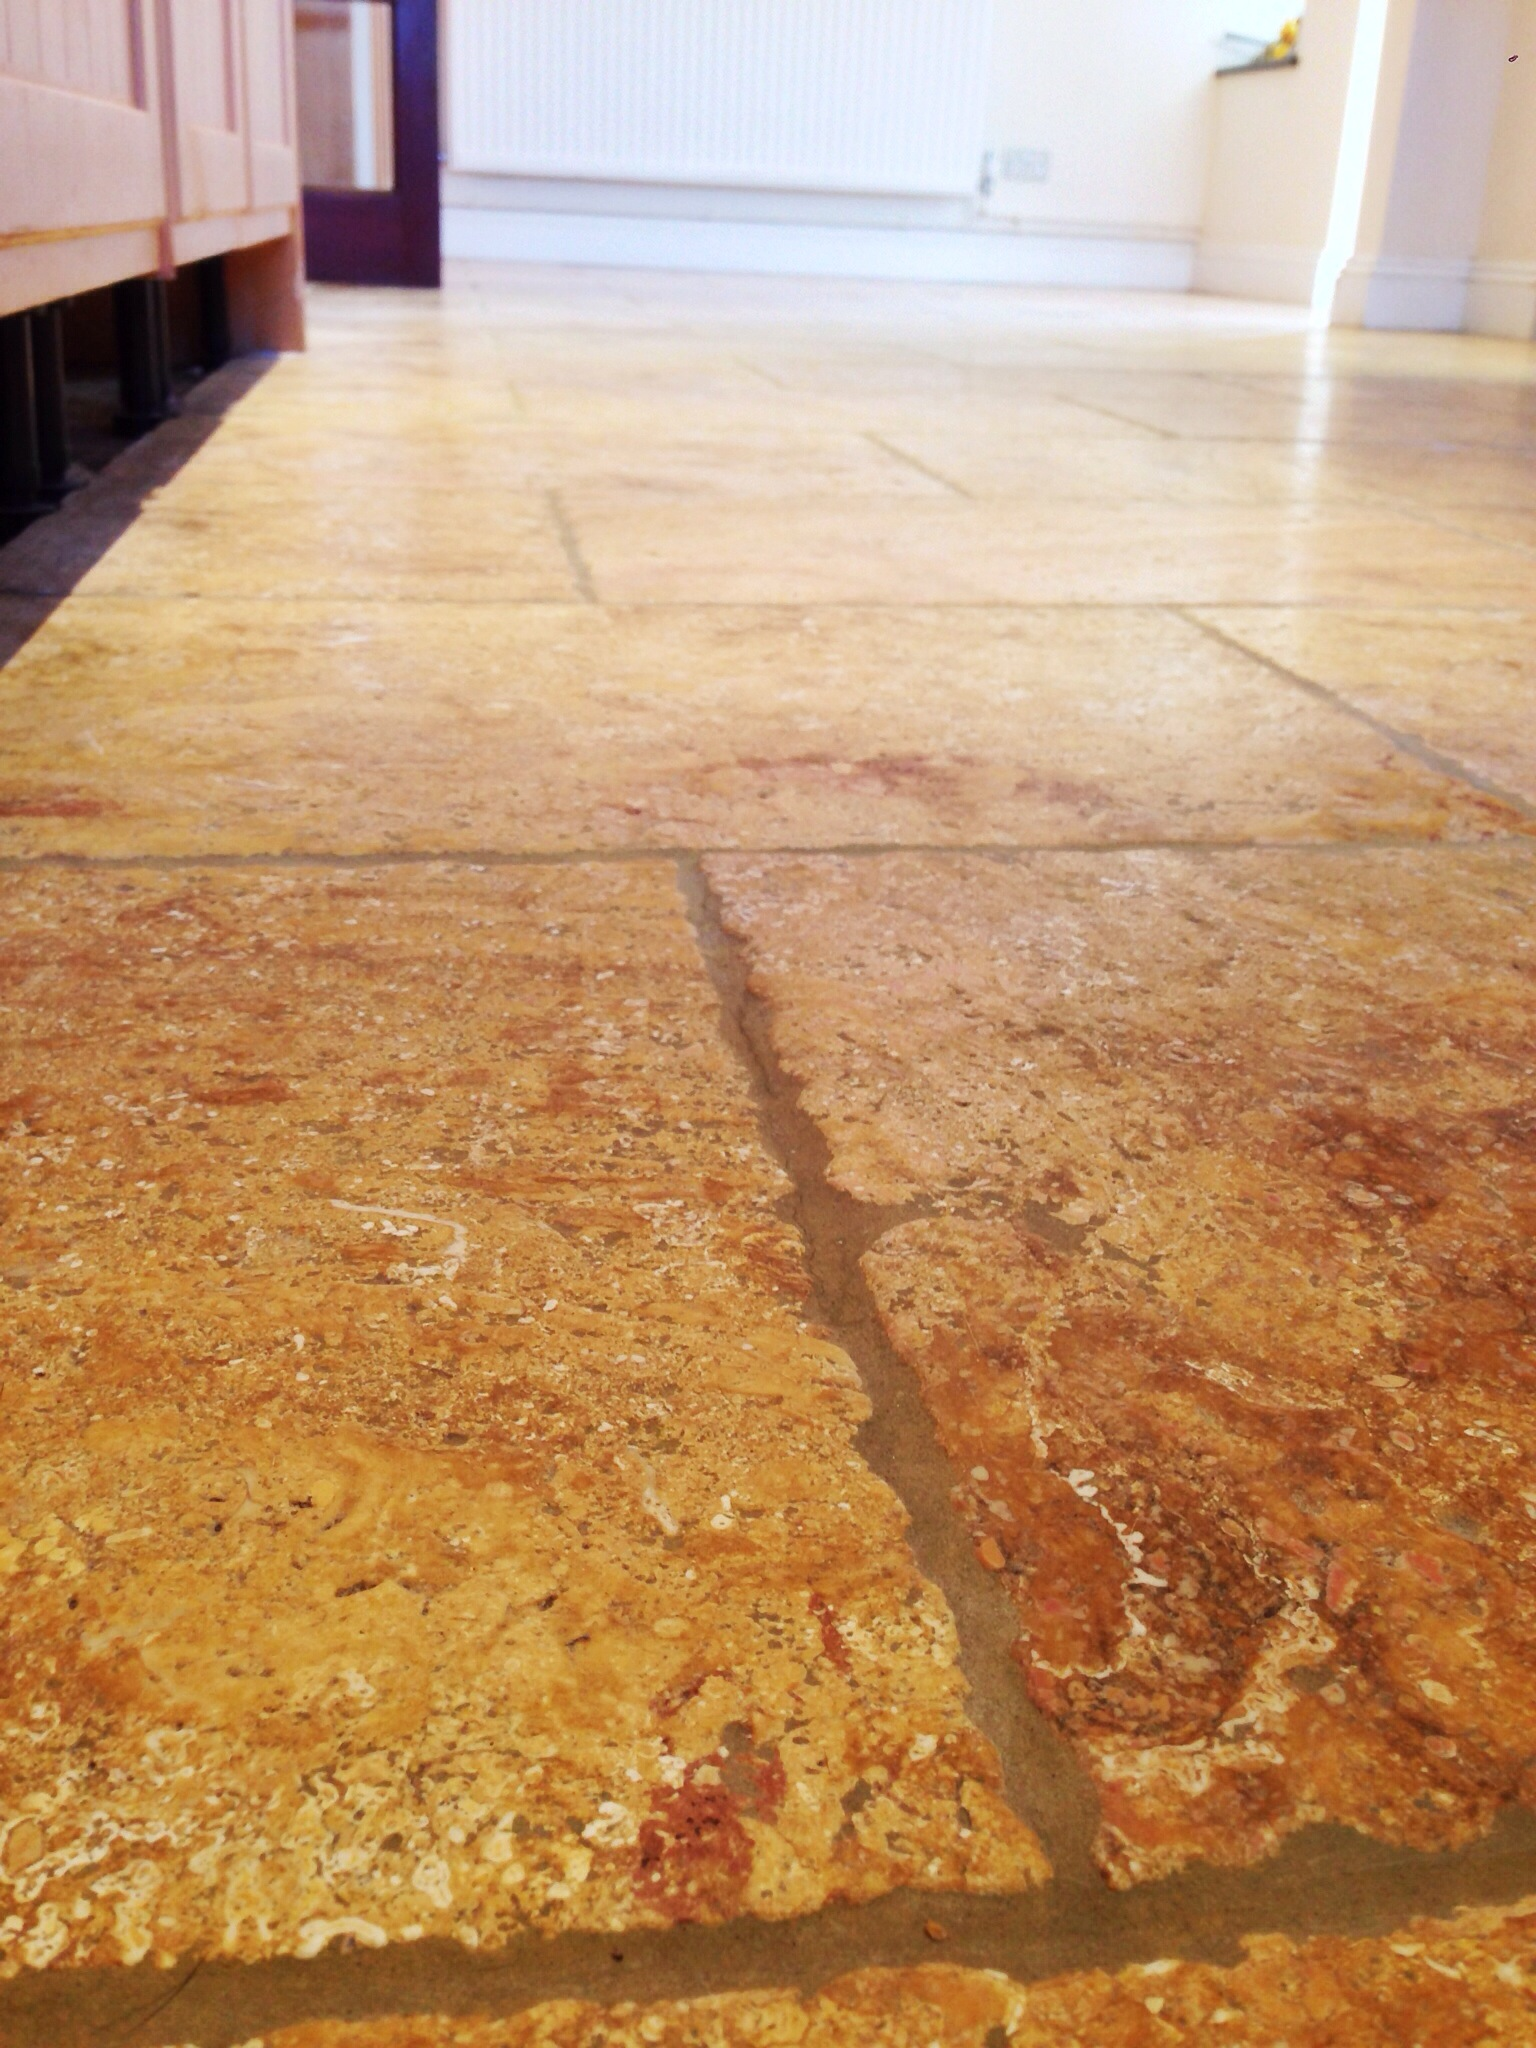 Limestone Kitchen Floor tiles, after professional cleaning